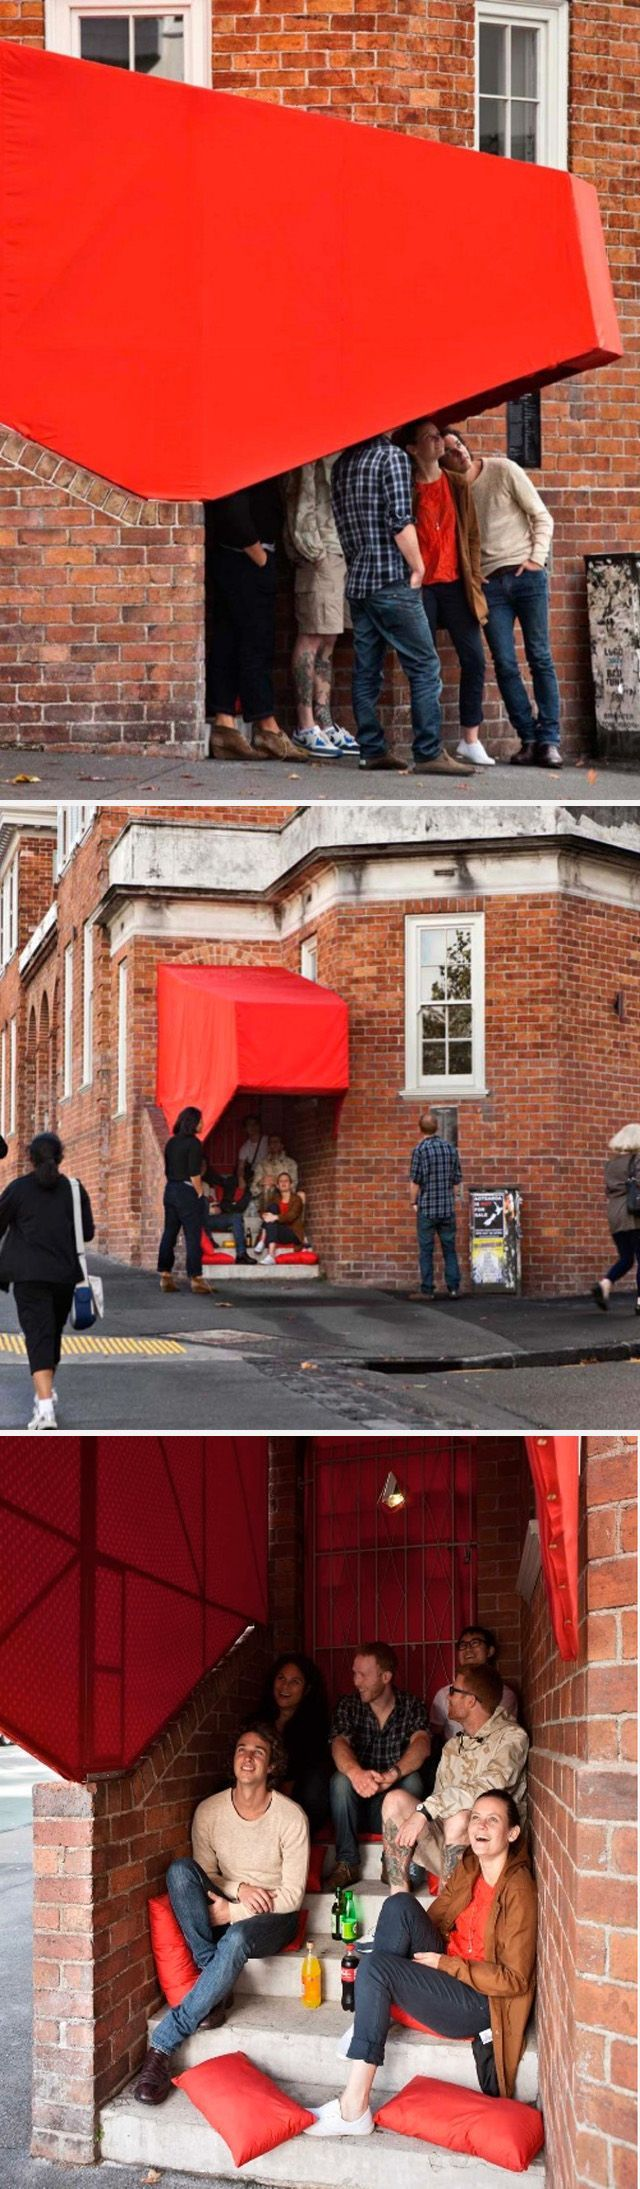 Stairway Cinema is the third major installation by OH.NO.SUMO. This project takes inspiration from the site and its inhabitants. The intersection of Symonds Street and Mount Street is a place of 'hard waiting'. Bus stops and laundromats create a hard-scape of poor space for social interaction. Members of the public retreat individually into the media offered on their mobile phones.